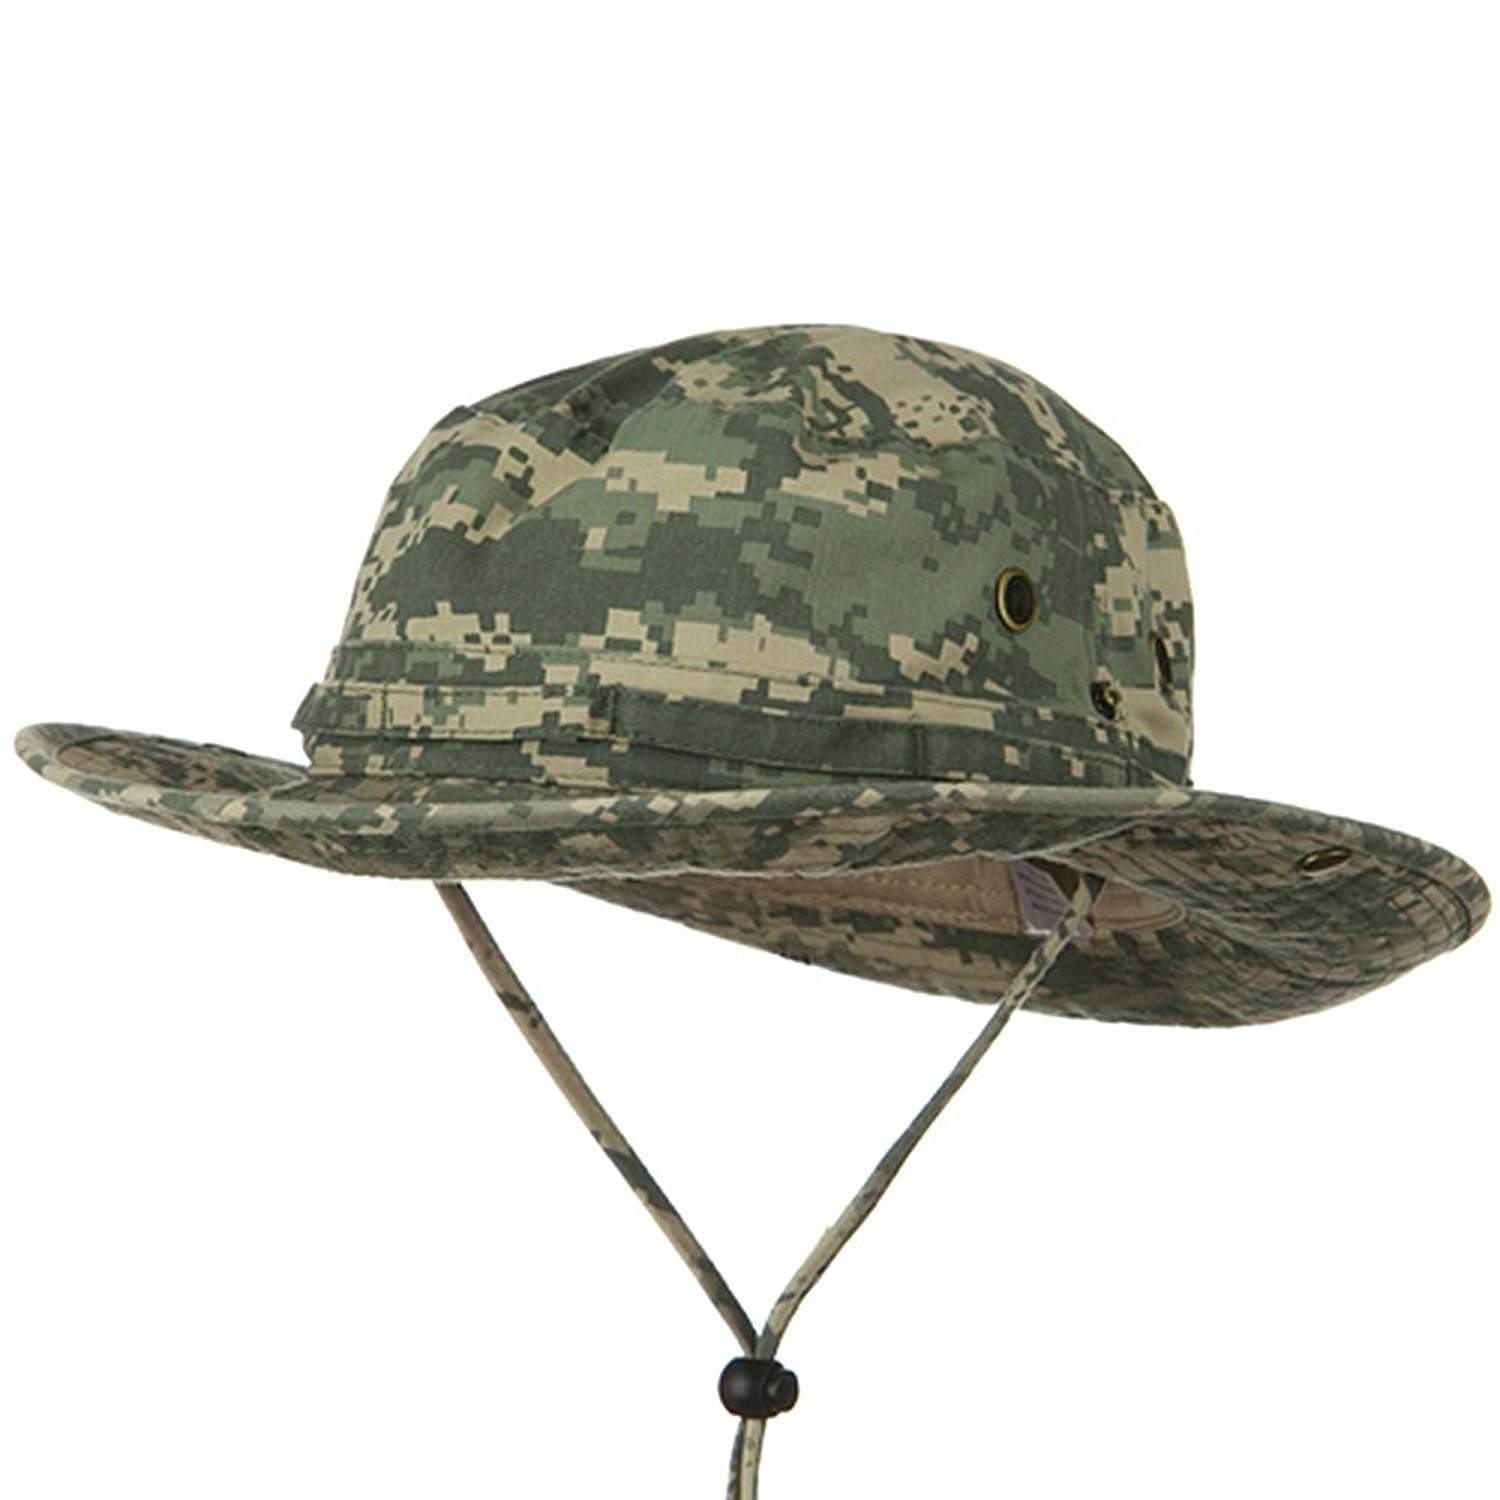 93921eb50c1 Get Quotations · E4hats Youth Washed Hunting Hat - Digital Camo W20S09F